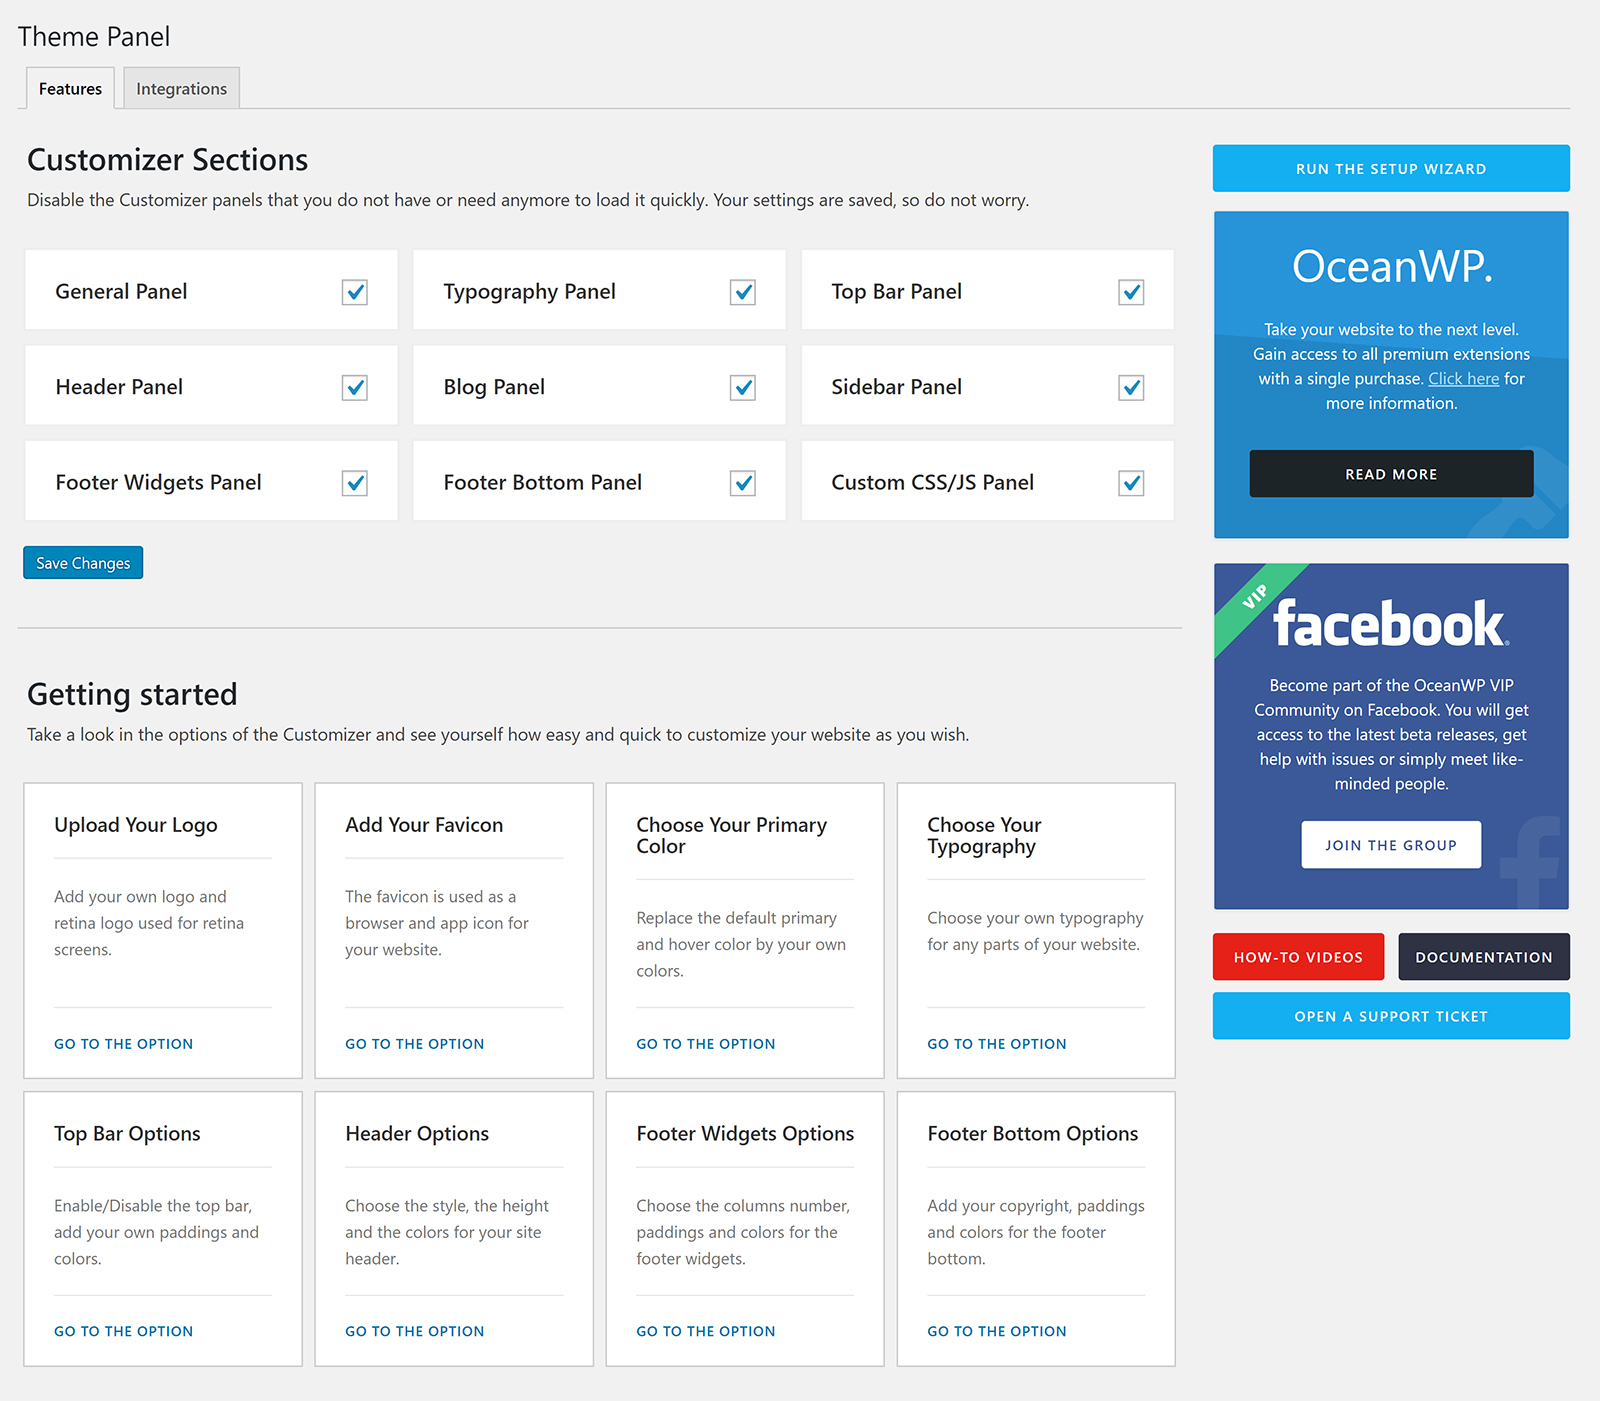 OceanWP Theme Panel Features